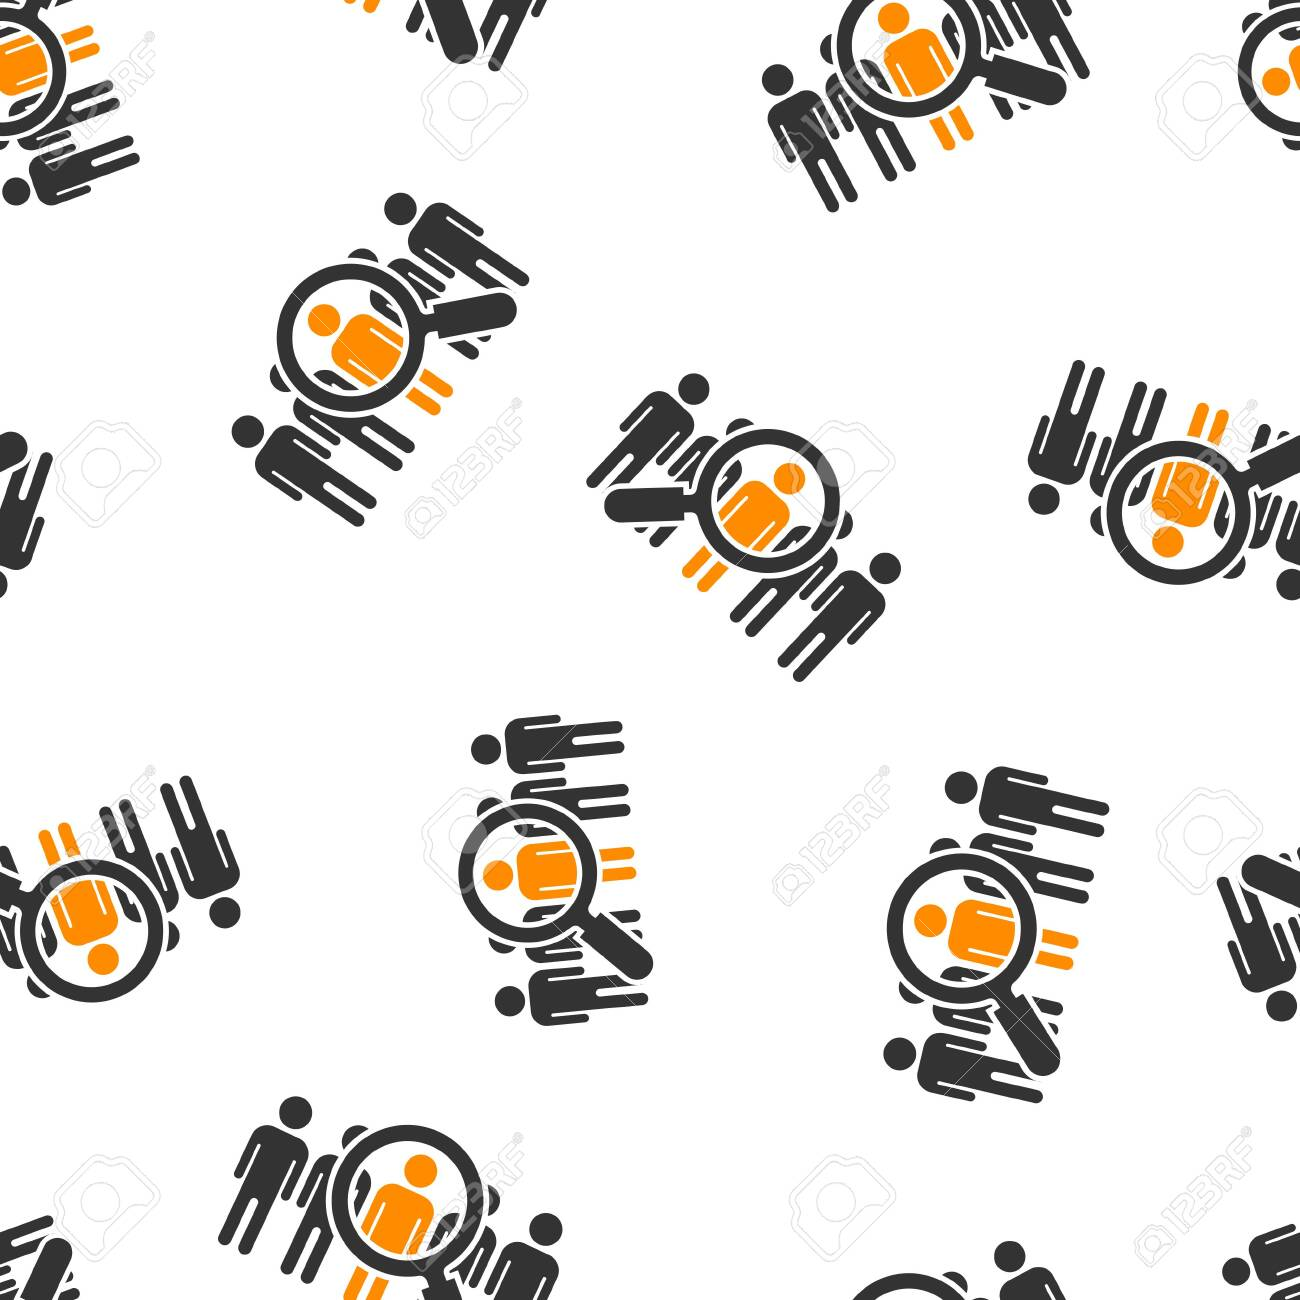 Search job vacancy icon seamless pattern background. Loupe career vector illustration on white isolated background. Find employer business concept. - 126361733